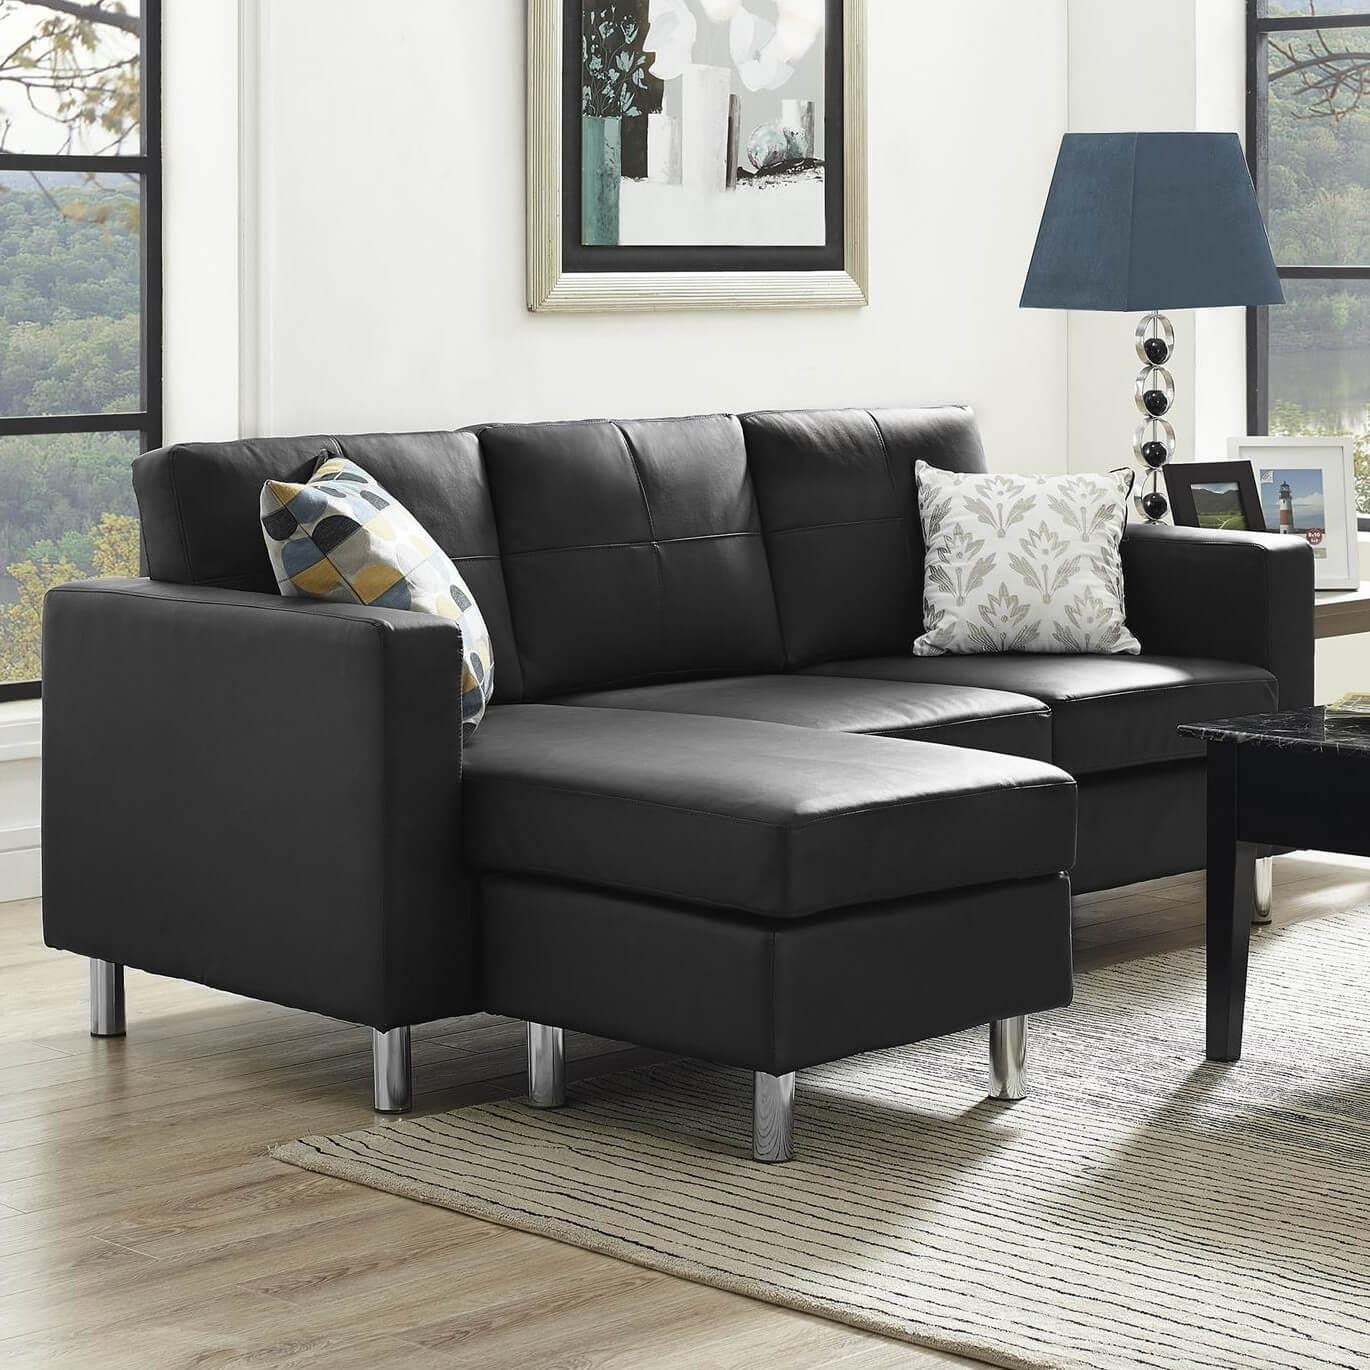 13 Sectional Sofas Under $500 (Several Styles) Within Modern Sectional Sofas For Small Spaces (View 10 of 20)